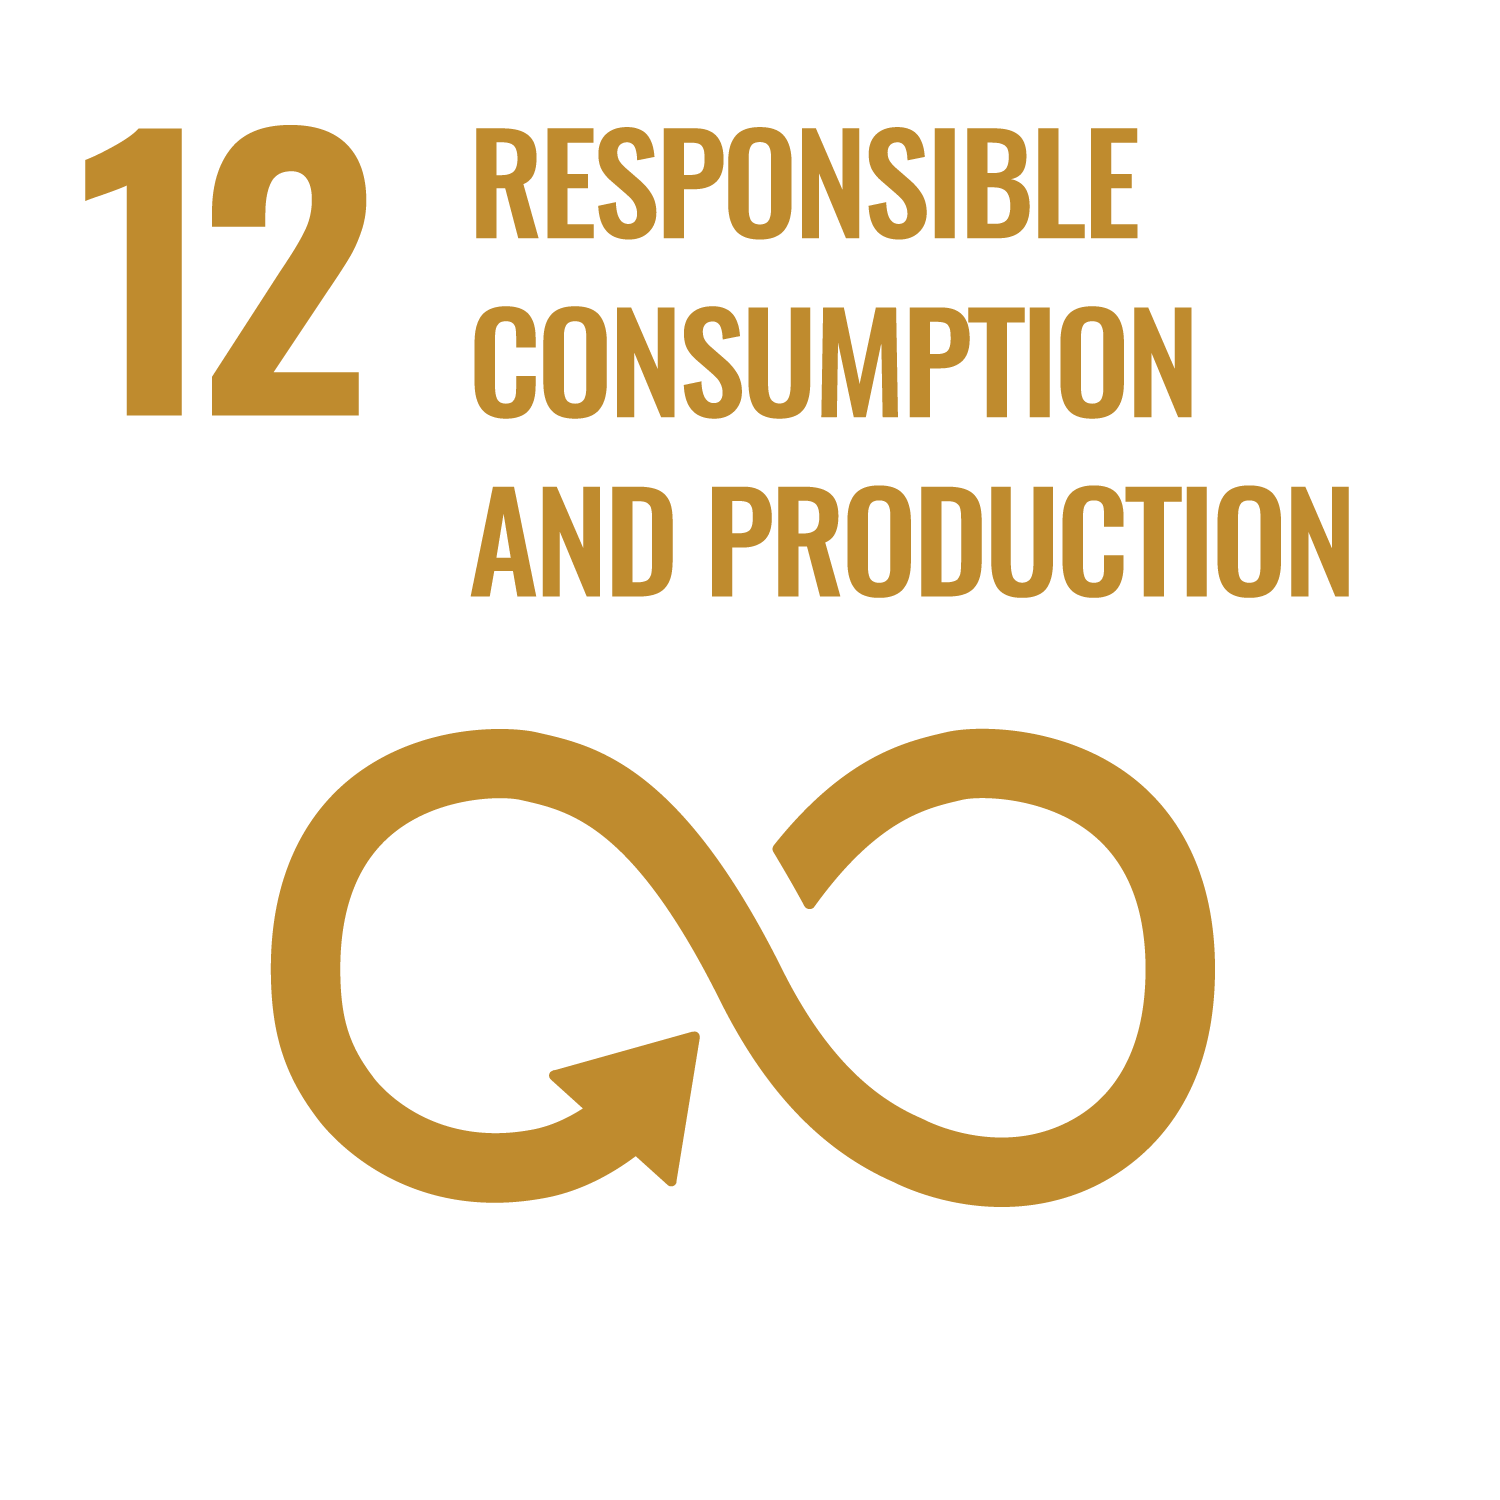 We support SDG 12 Sustainable consumption and production - …because of our focus on ethical sourcing of natural ingredients for a wide variety of consumer products.